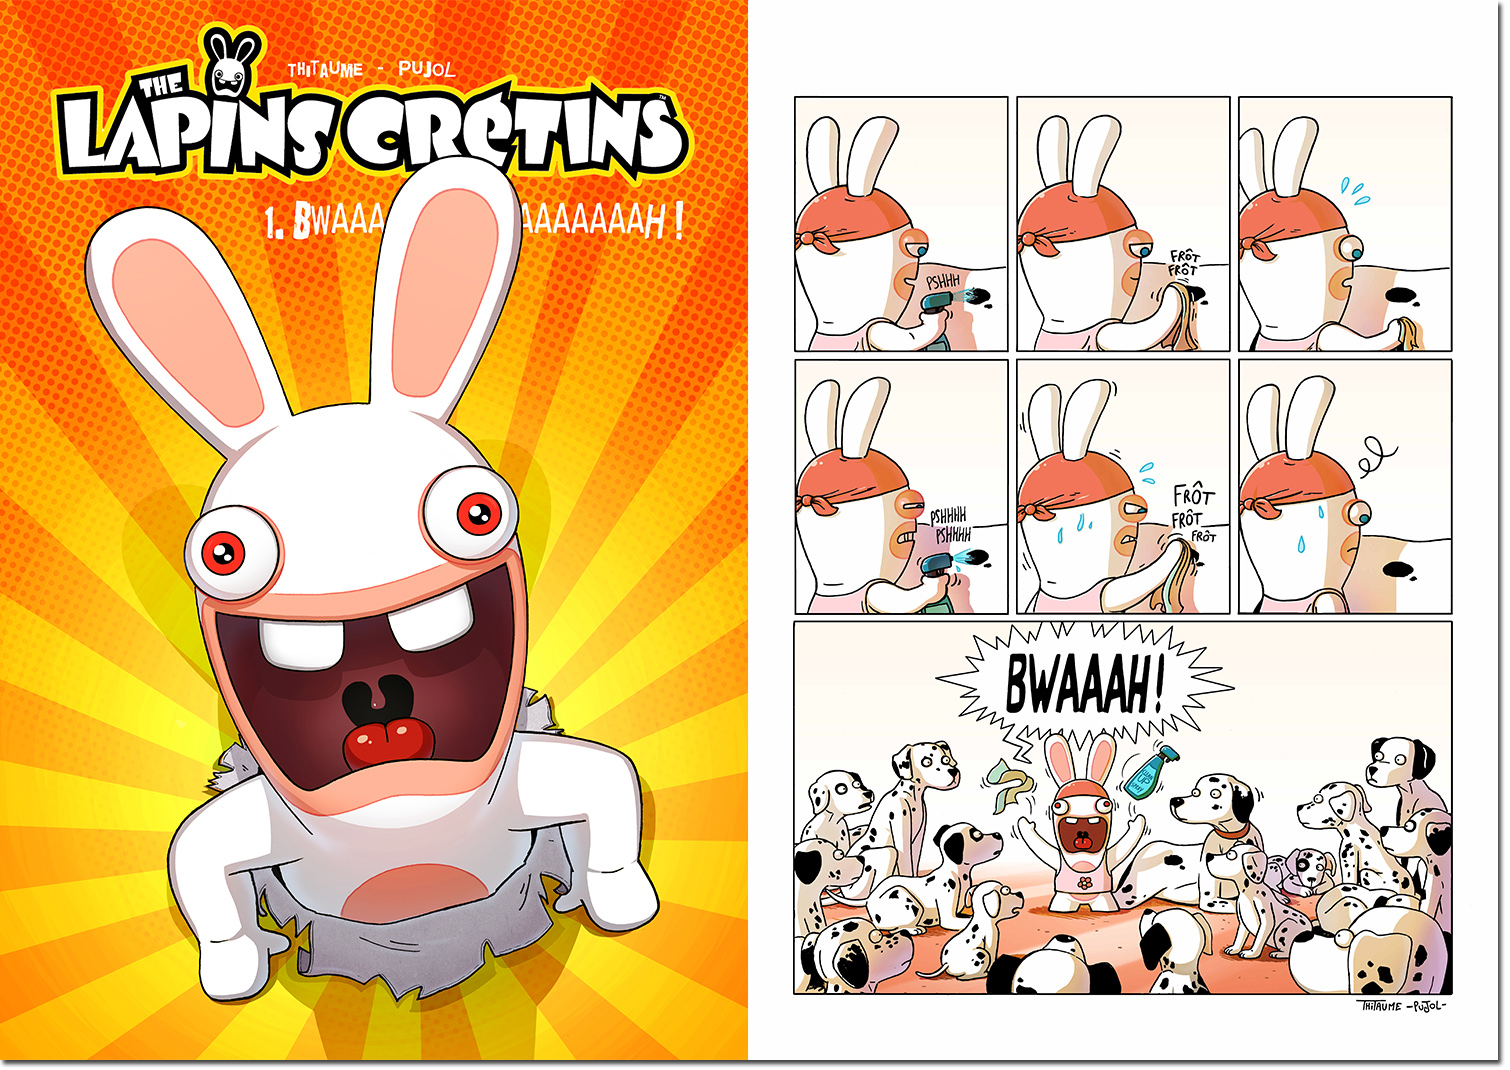 i could see that front page as a jump scare in a fnaf style keep the bunnies away from you rabbids horror game